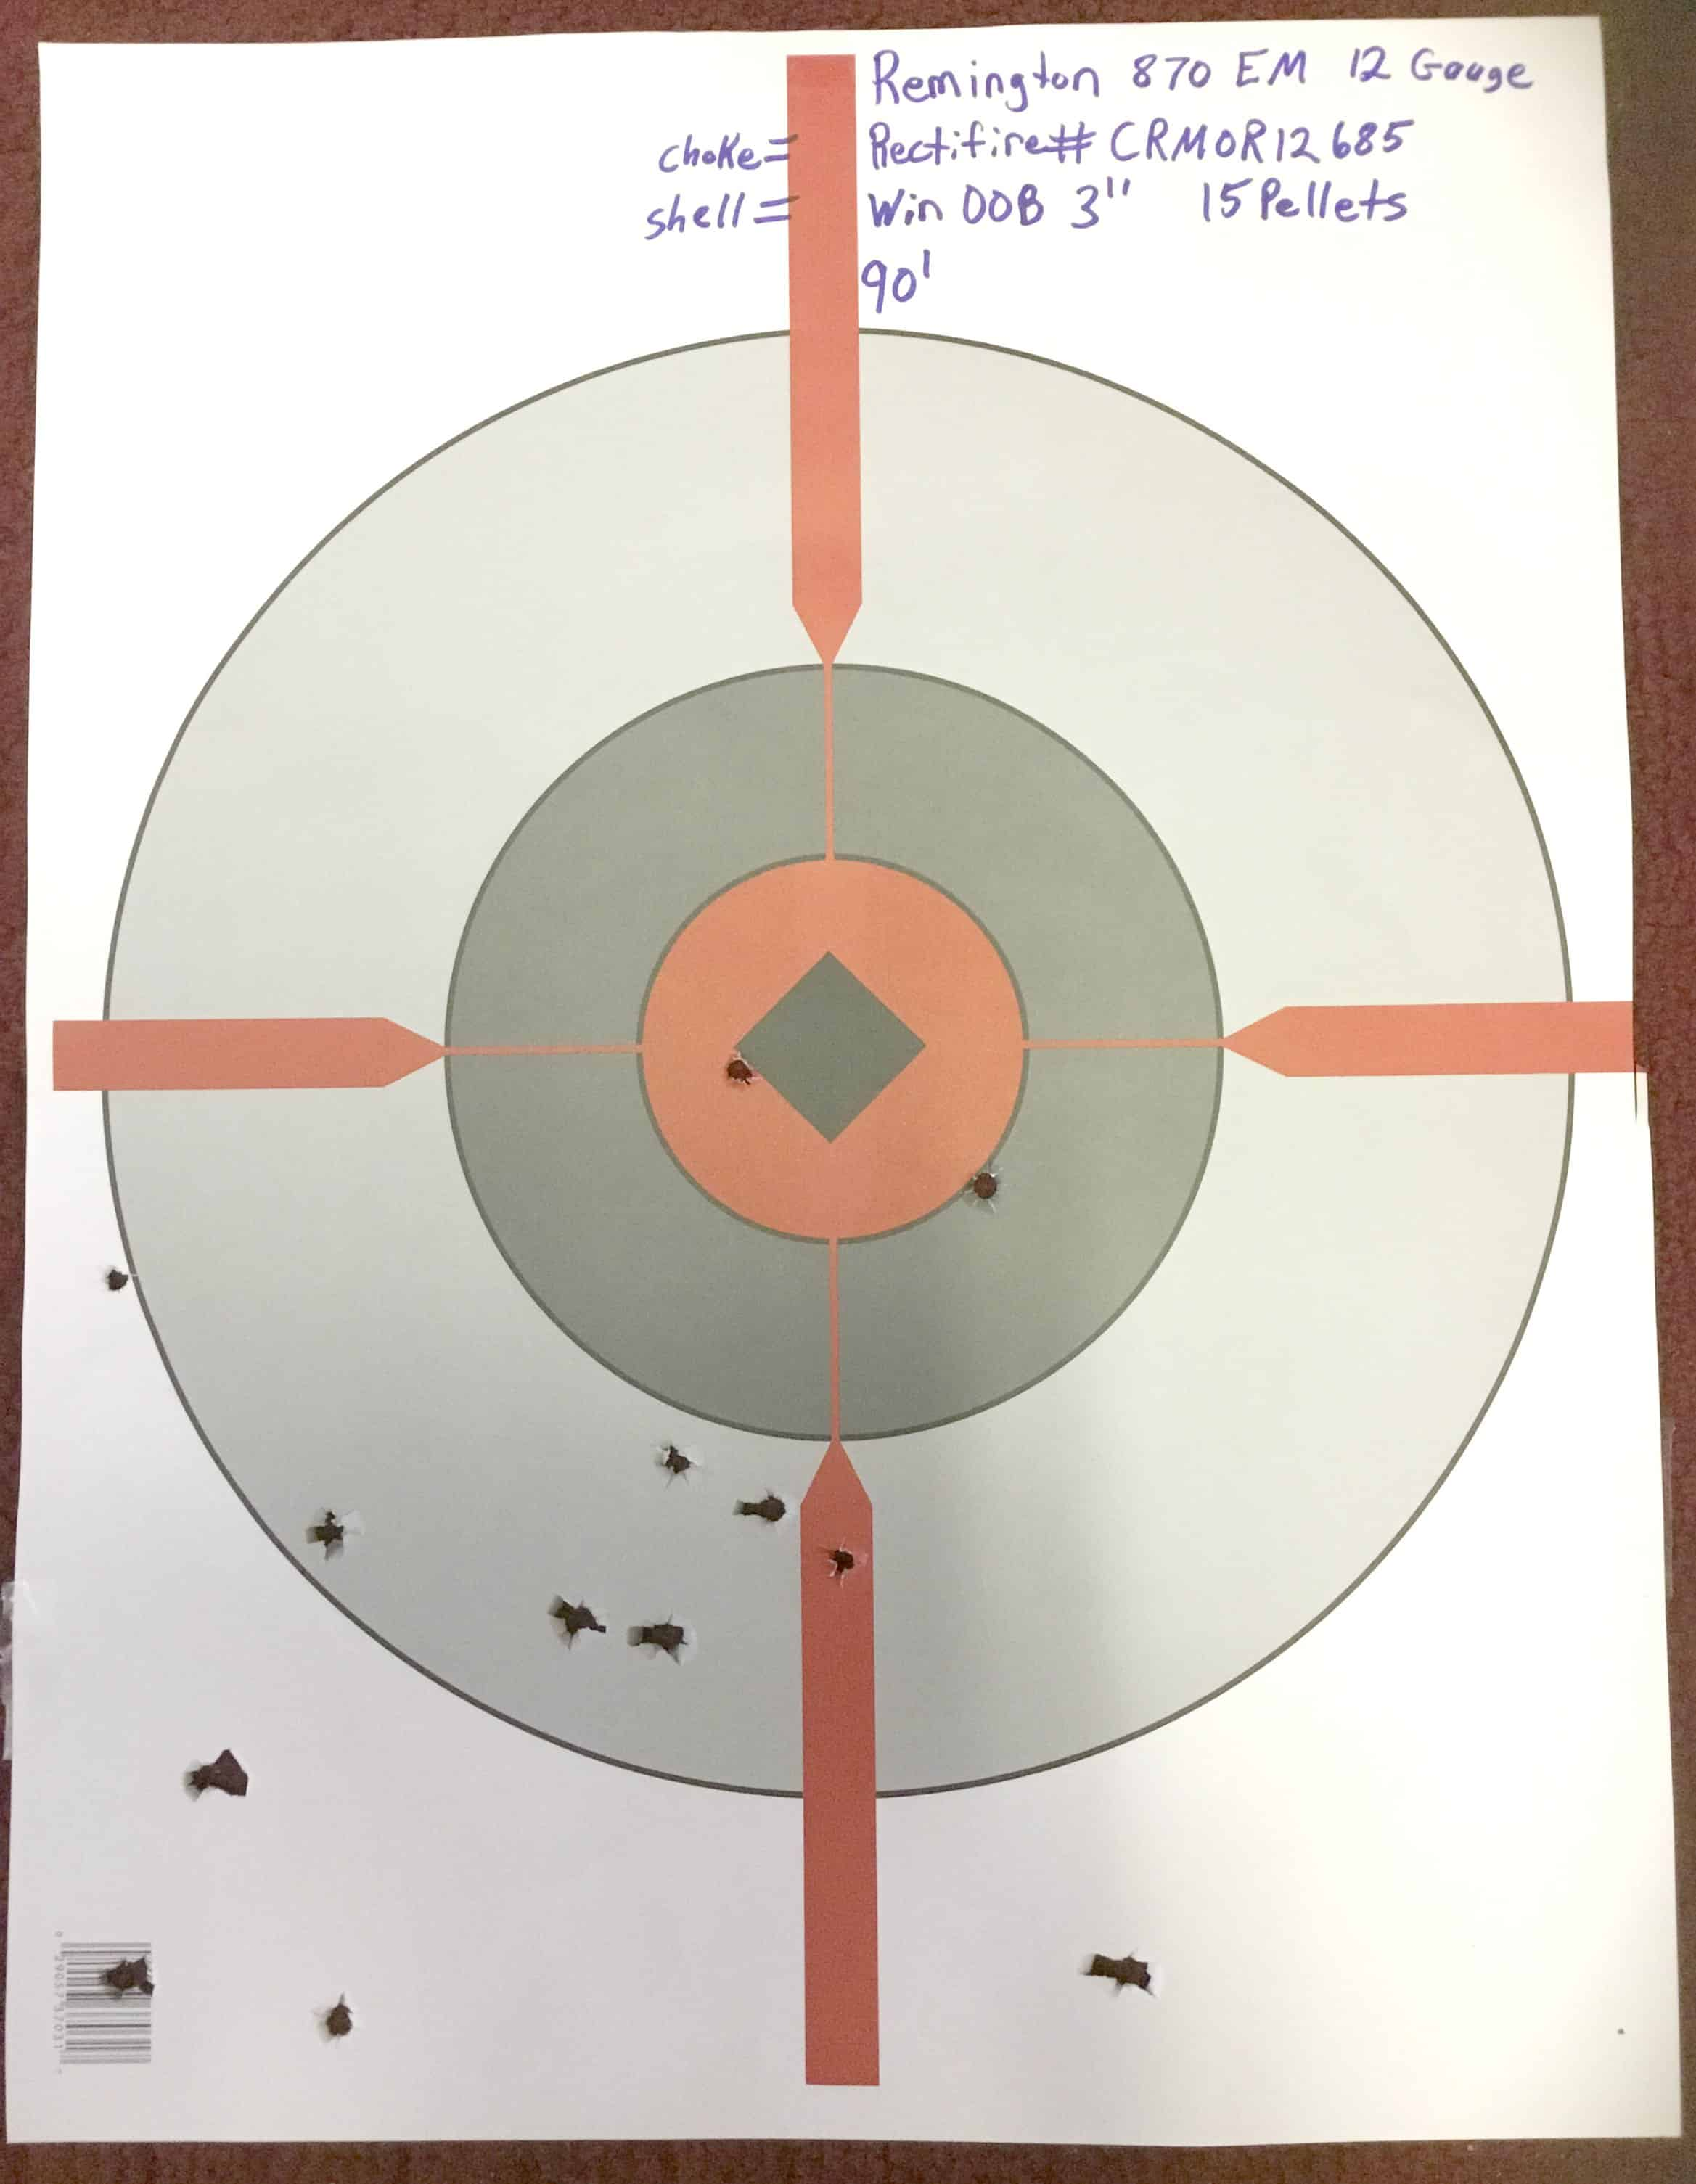 "Remington 870 EM 12 Gauge (Rectifire # CRMOR12685) Win. 00BK 3"" (15 pellets) @ 30 yds."